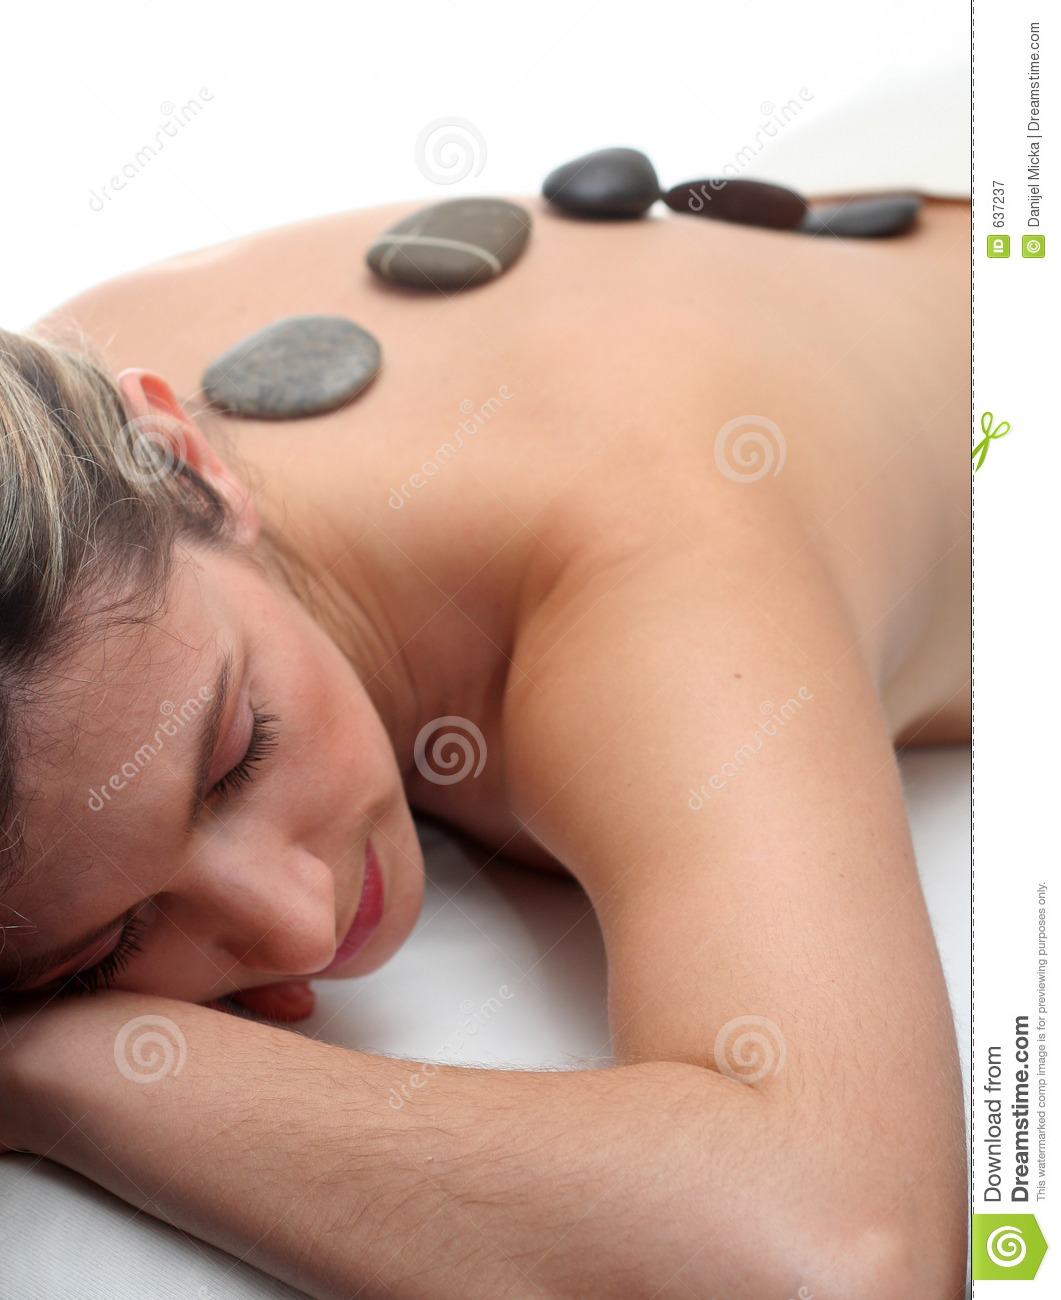 Download Hot stone massage stock image. Image of relaxing, relax - 637237